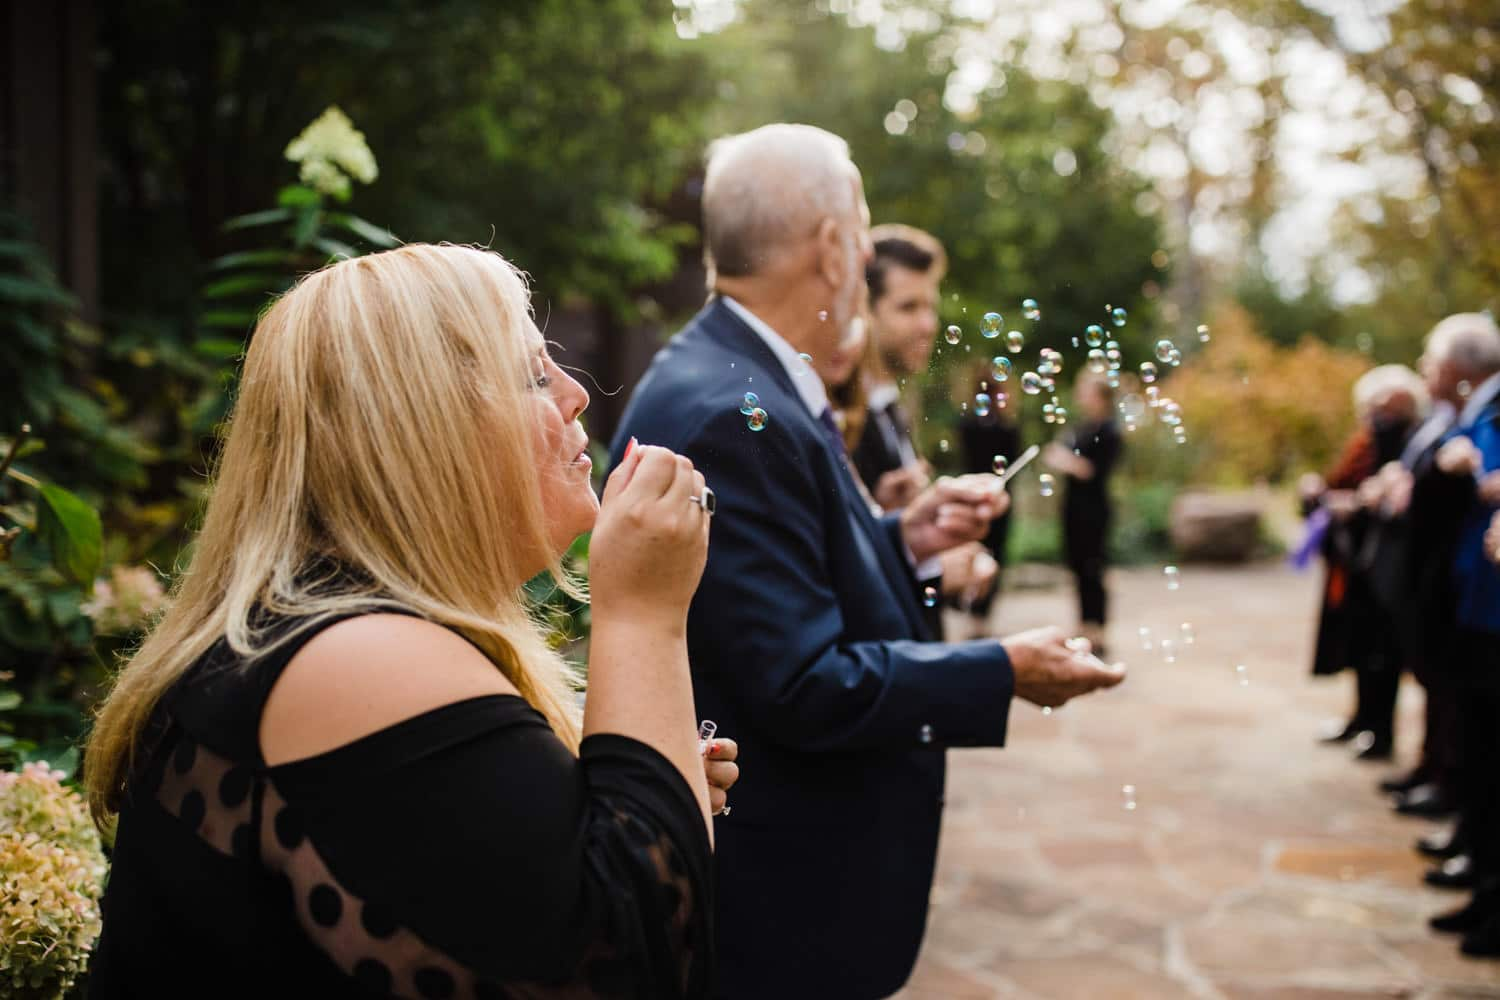 Guests blow bubbles at fall wedding